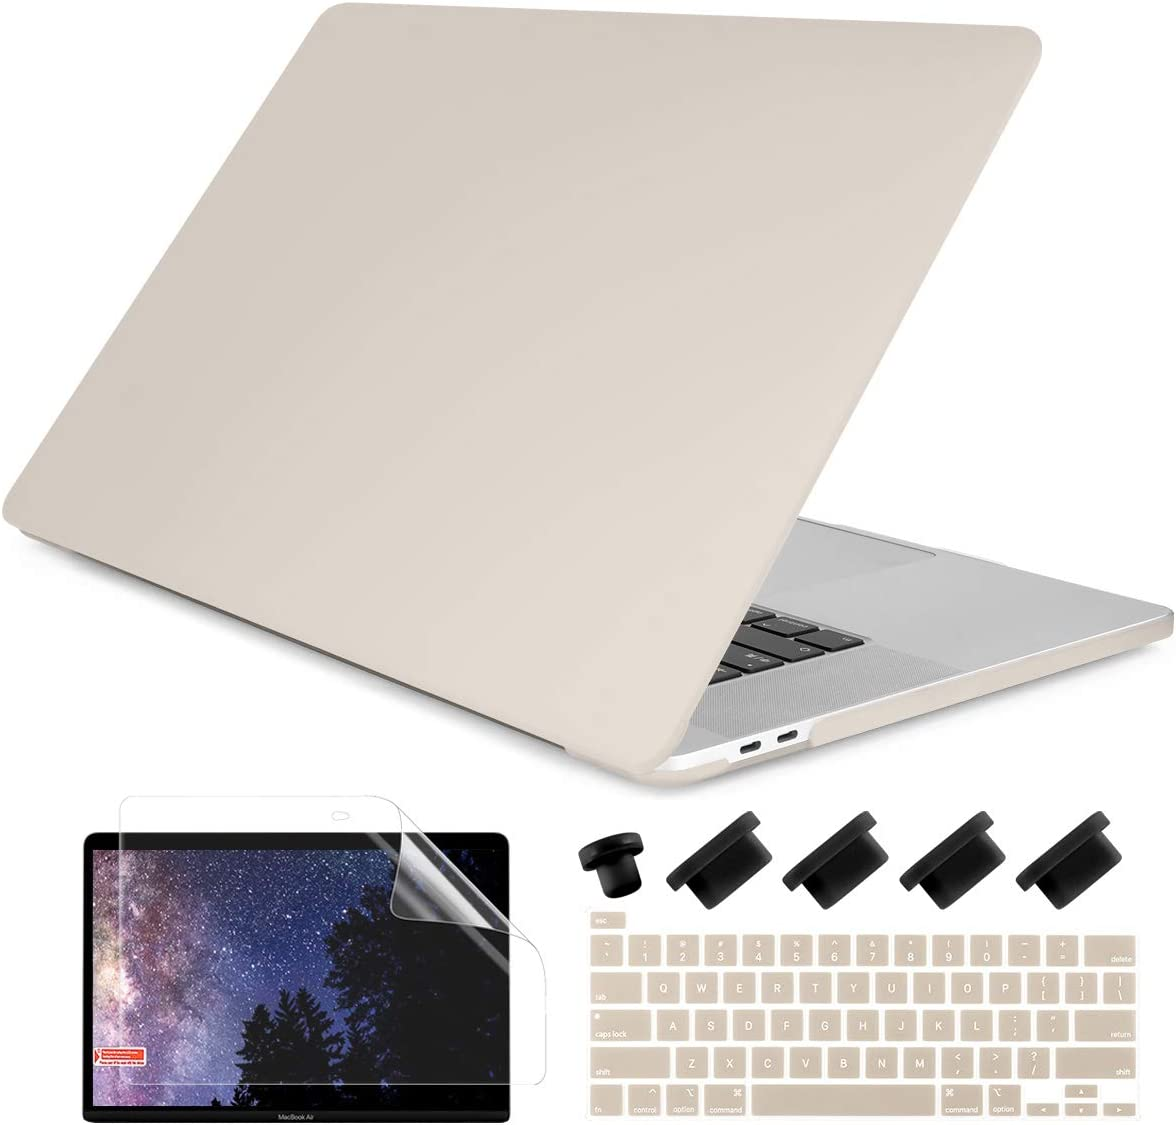 mart Dongke MacBook Pro 13 inch Case 2016 2018 2019 2017 Online limited product Release A215